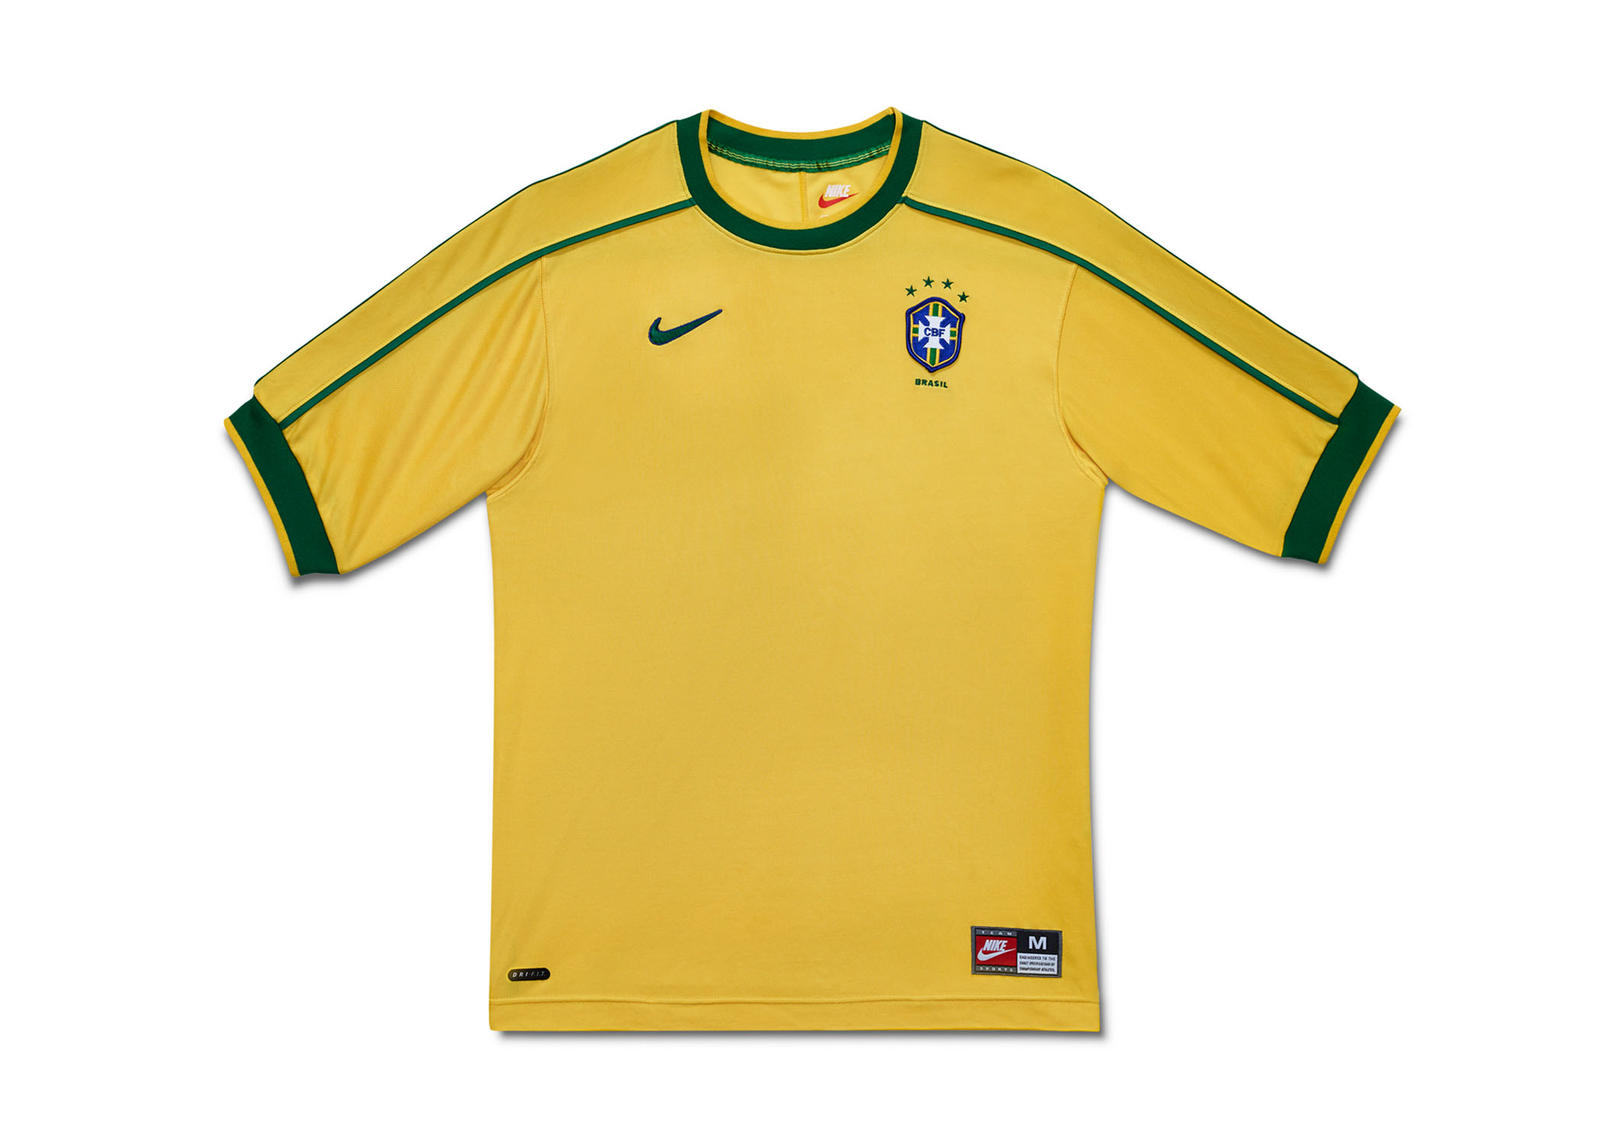 64c7068a08f71 A Retrospective of Brasil's Yellow Jersey - Nike News